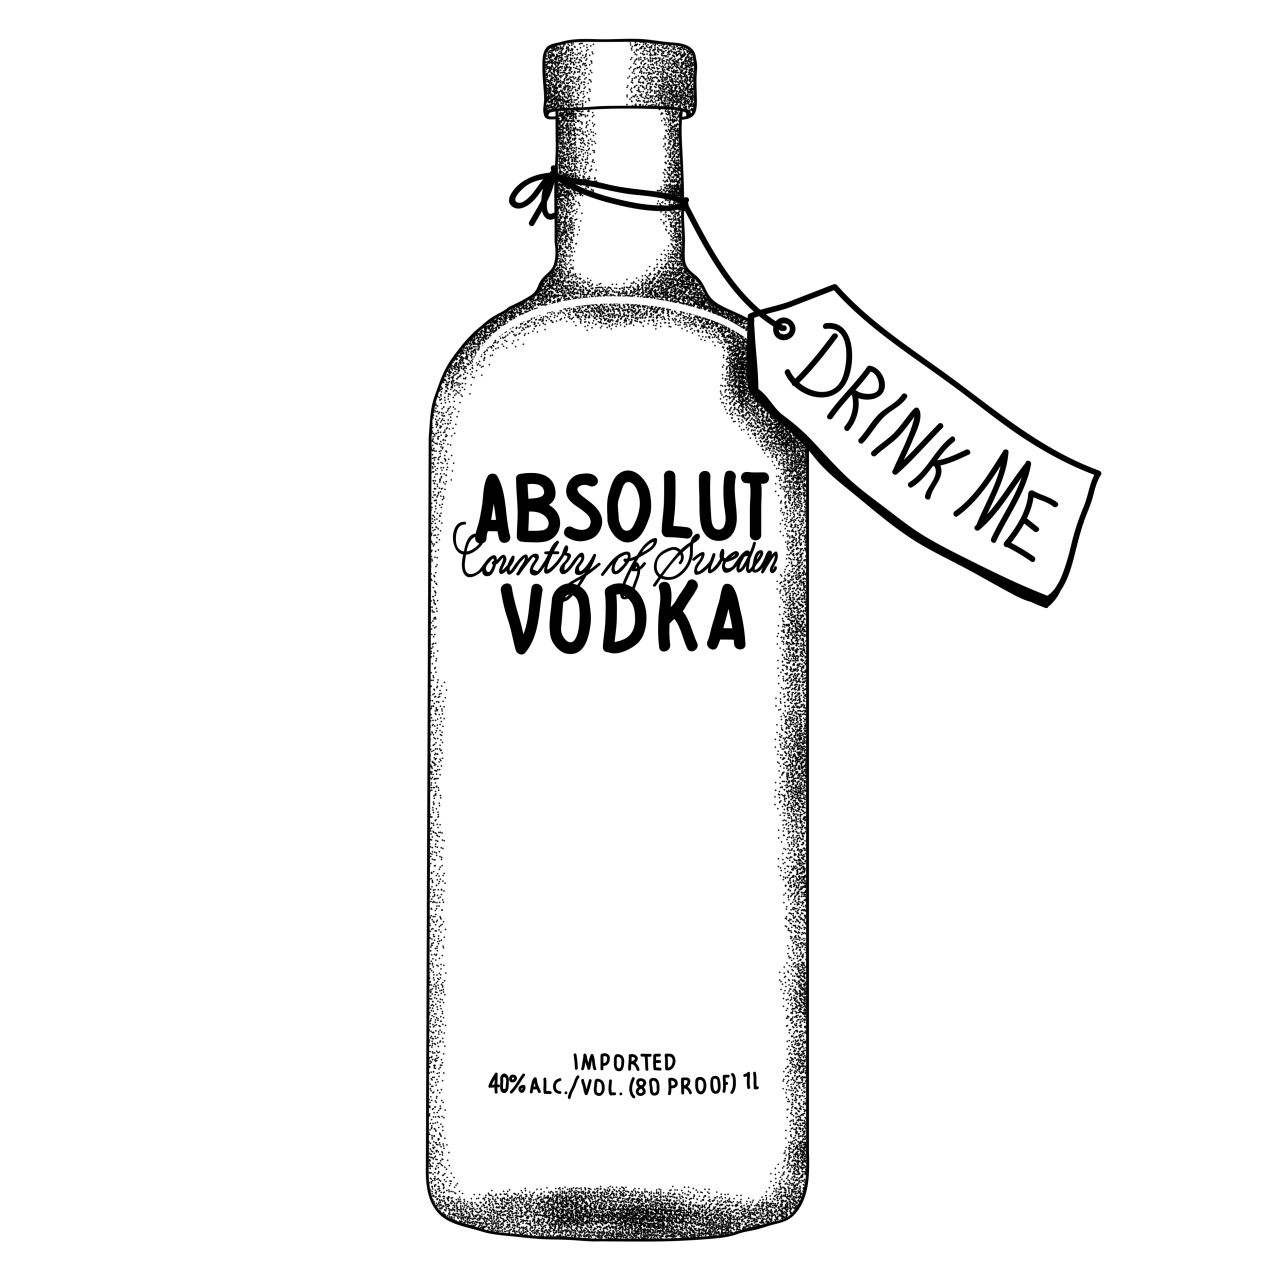 liquor bottle drawing at getdrawings com free for personal use